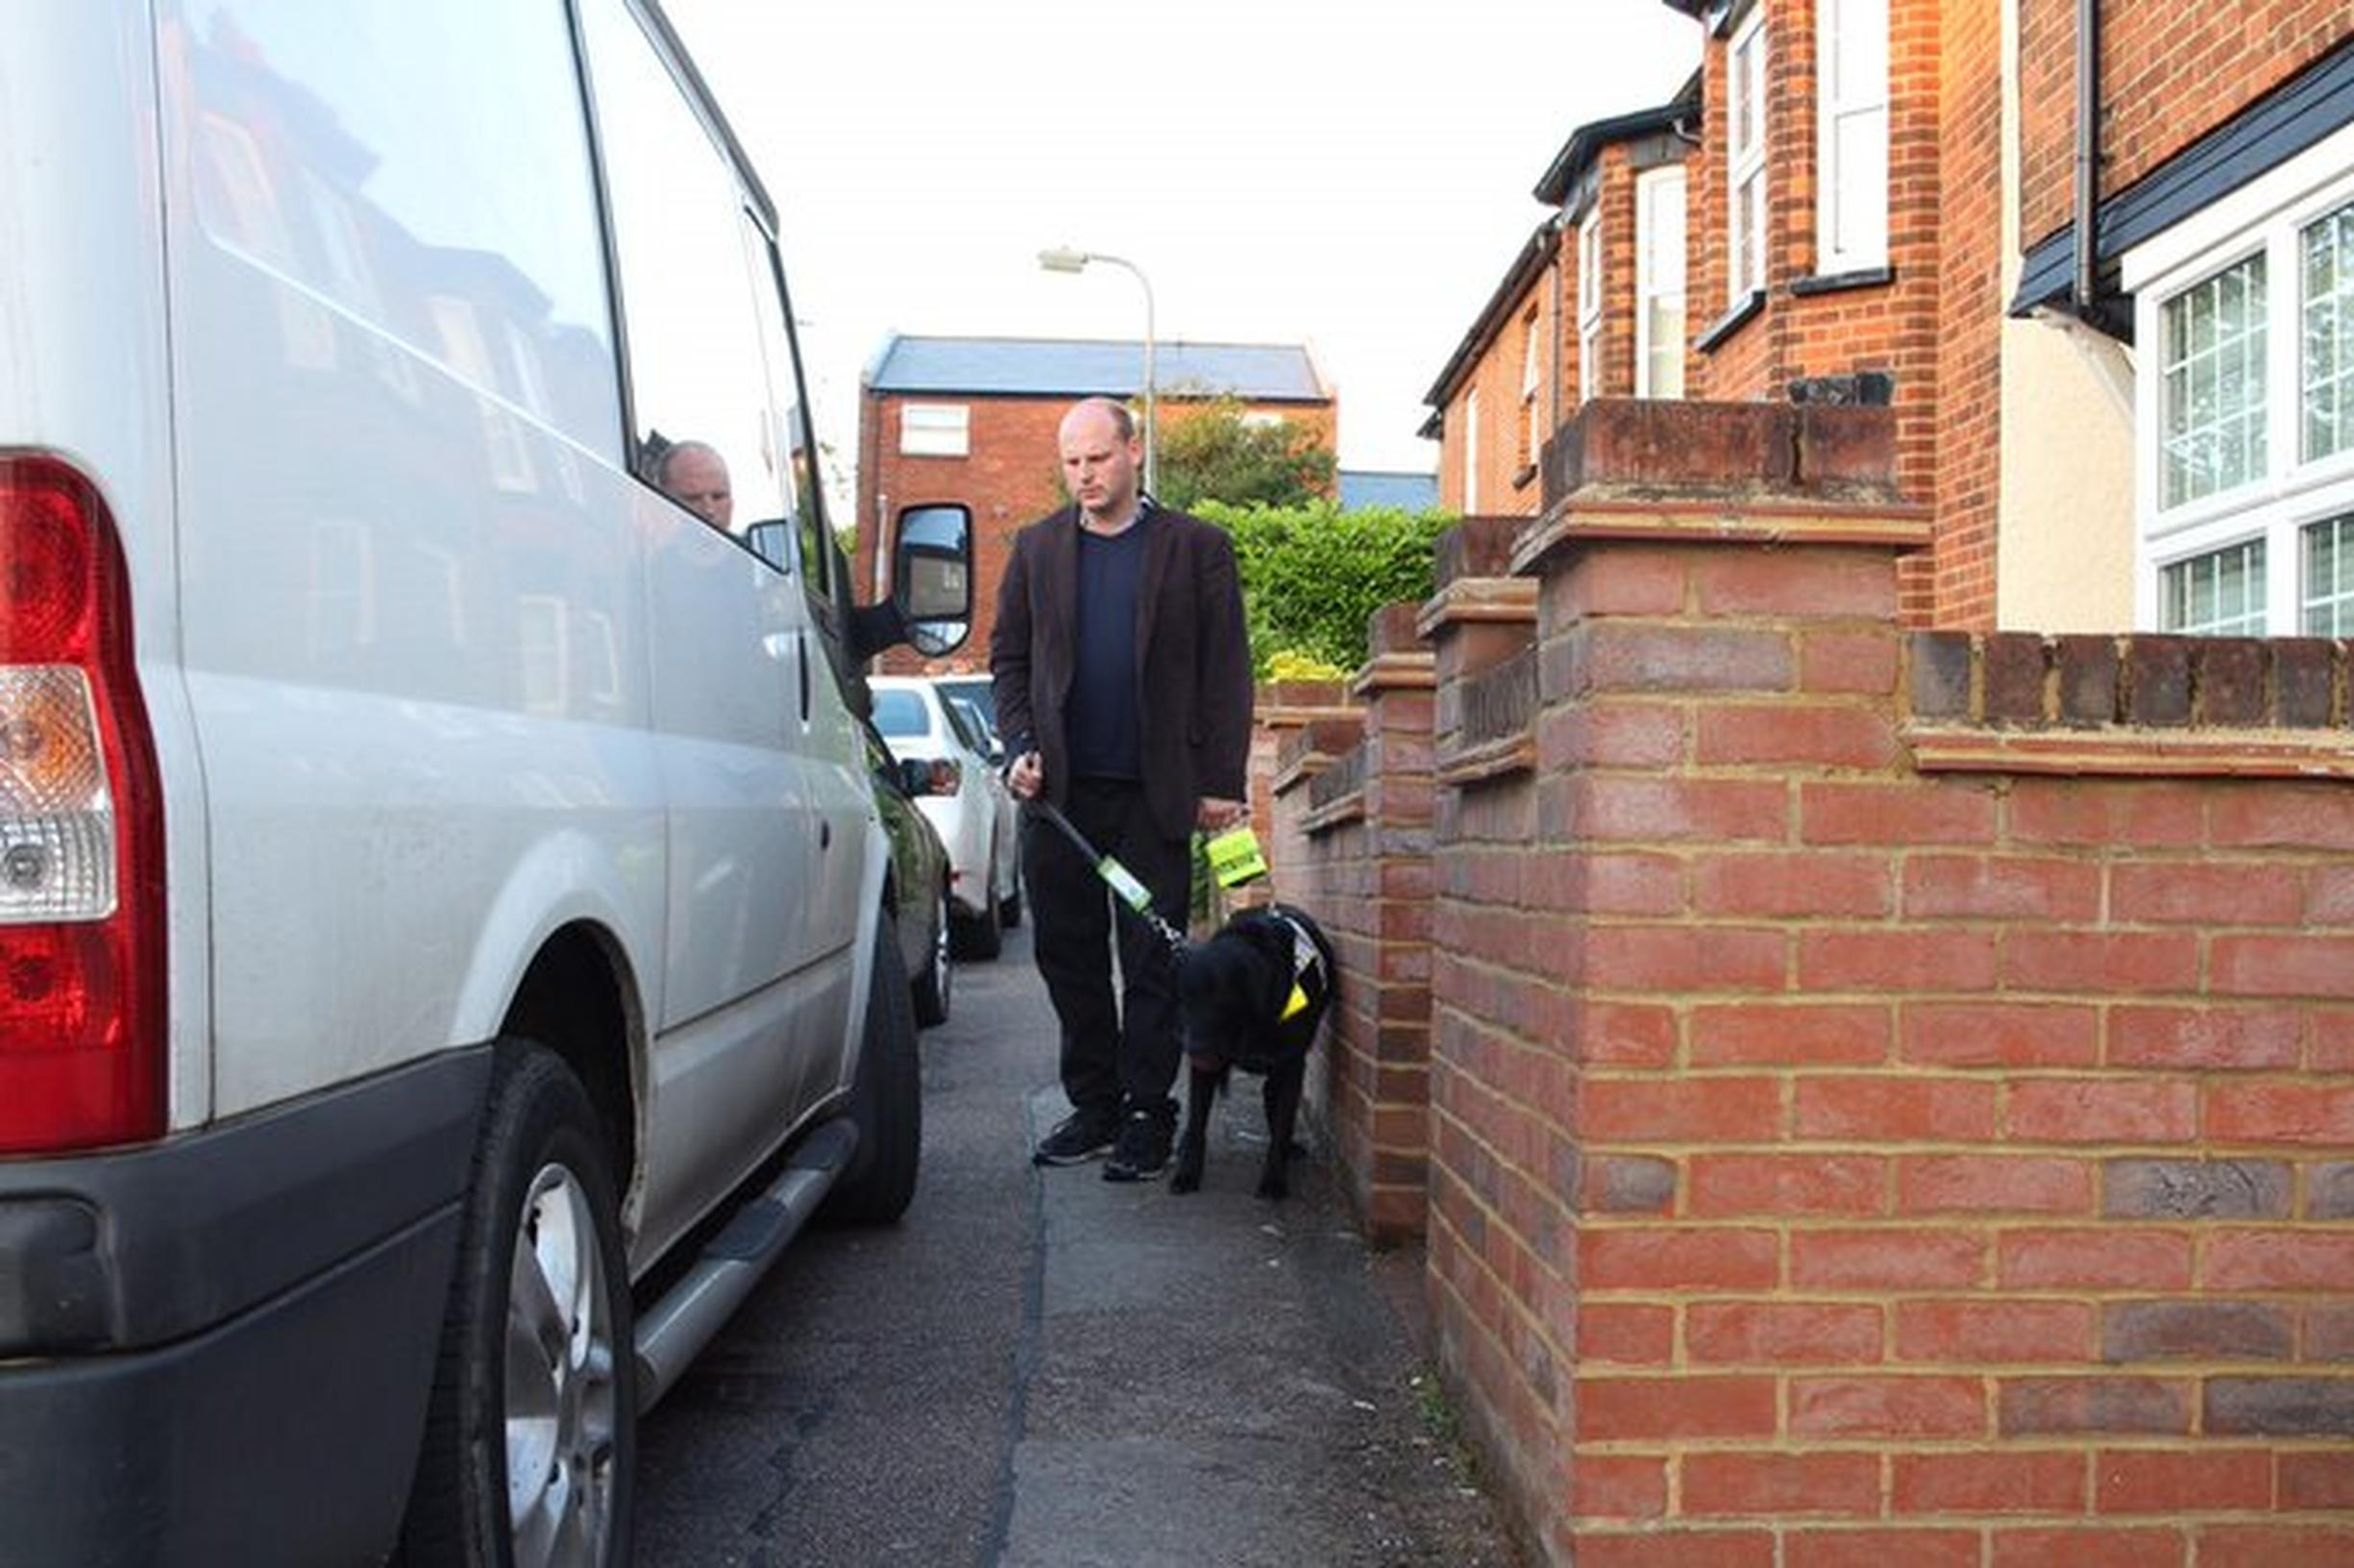 Cars parked on the footway are an obstruction for blind people